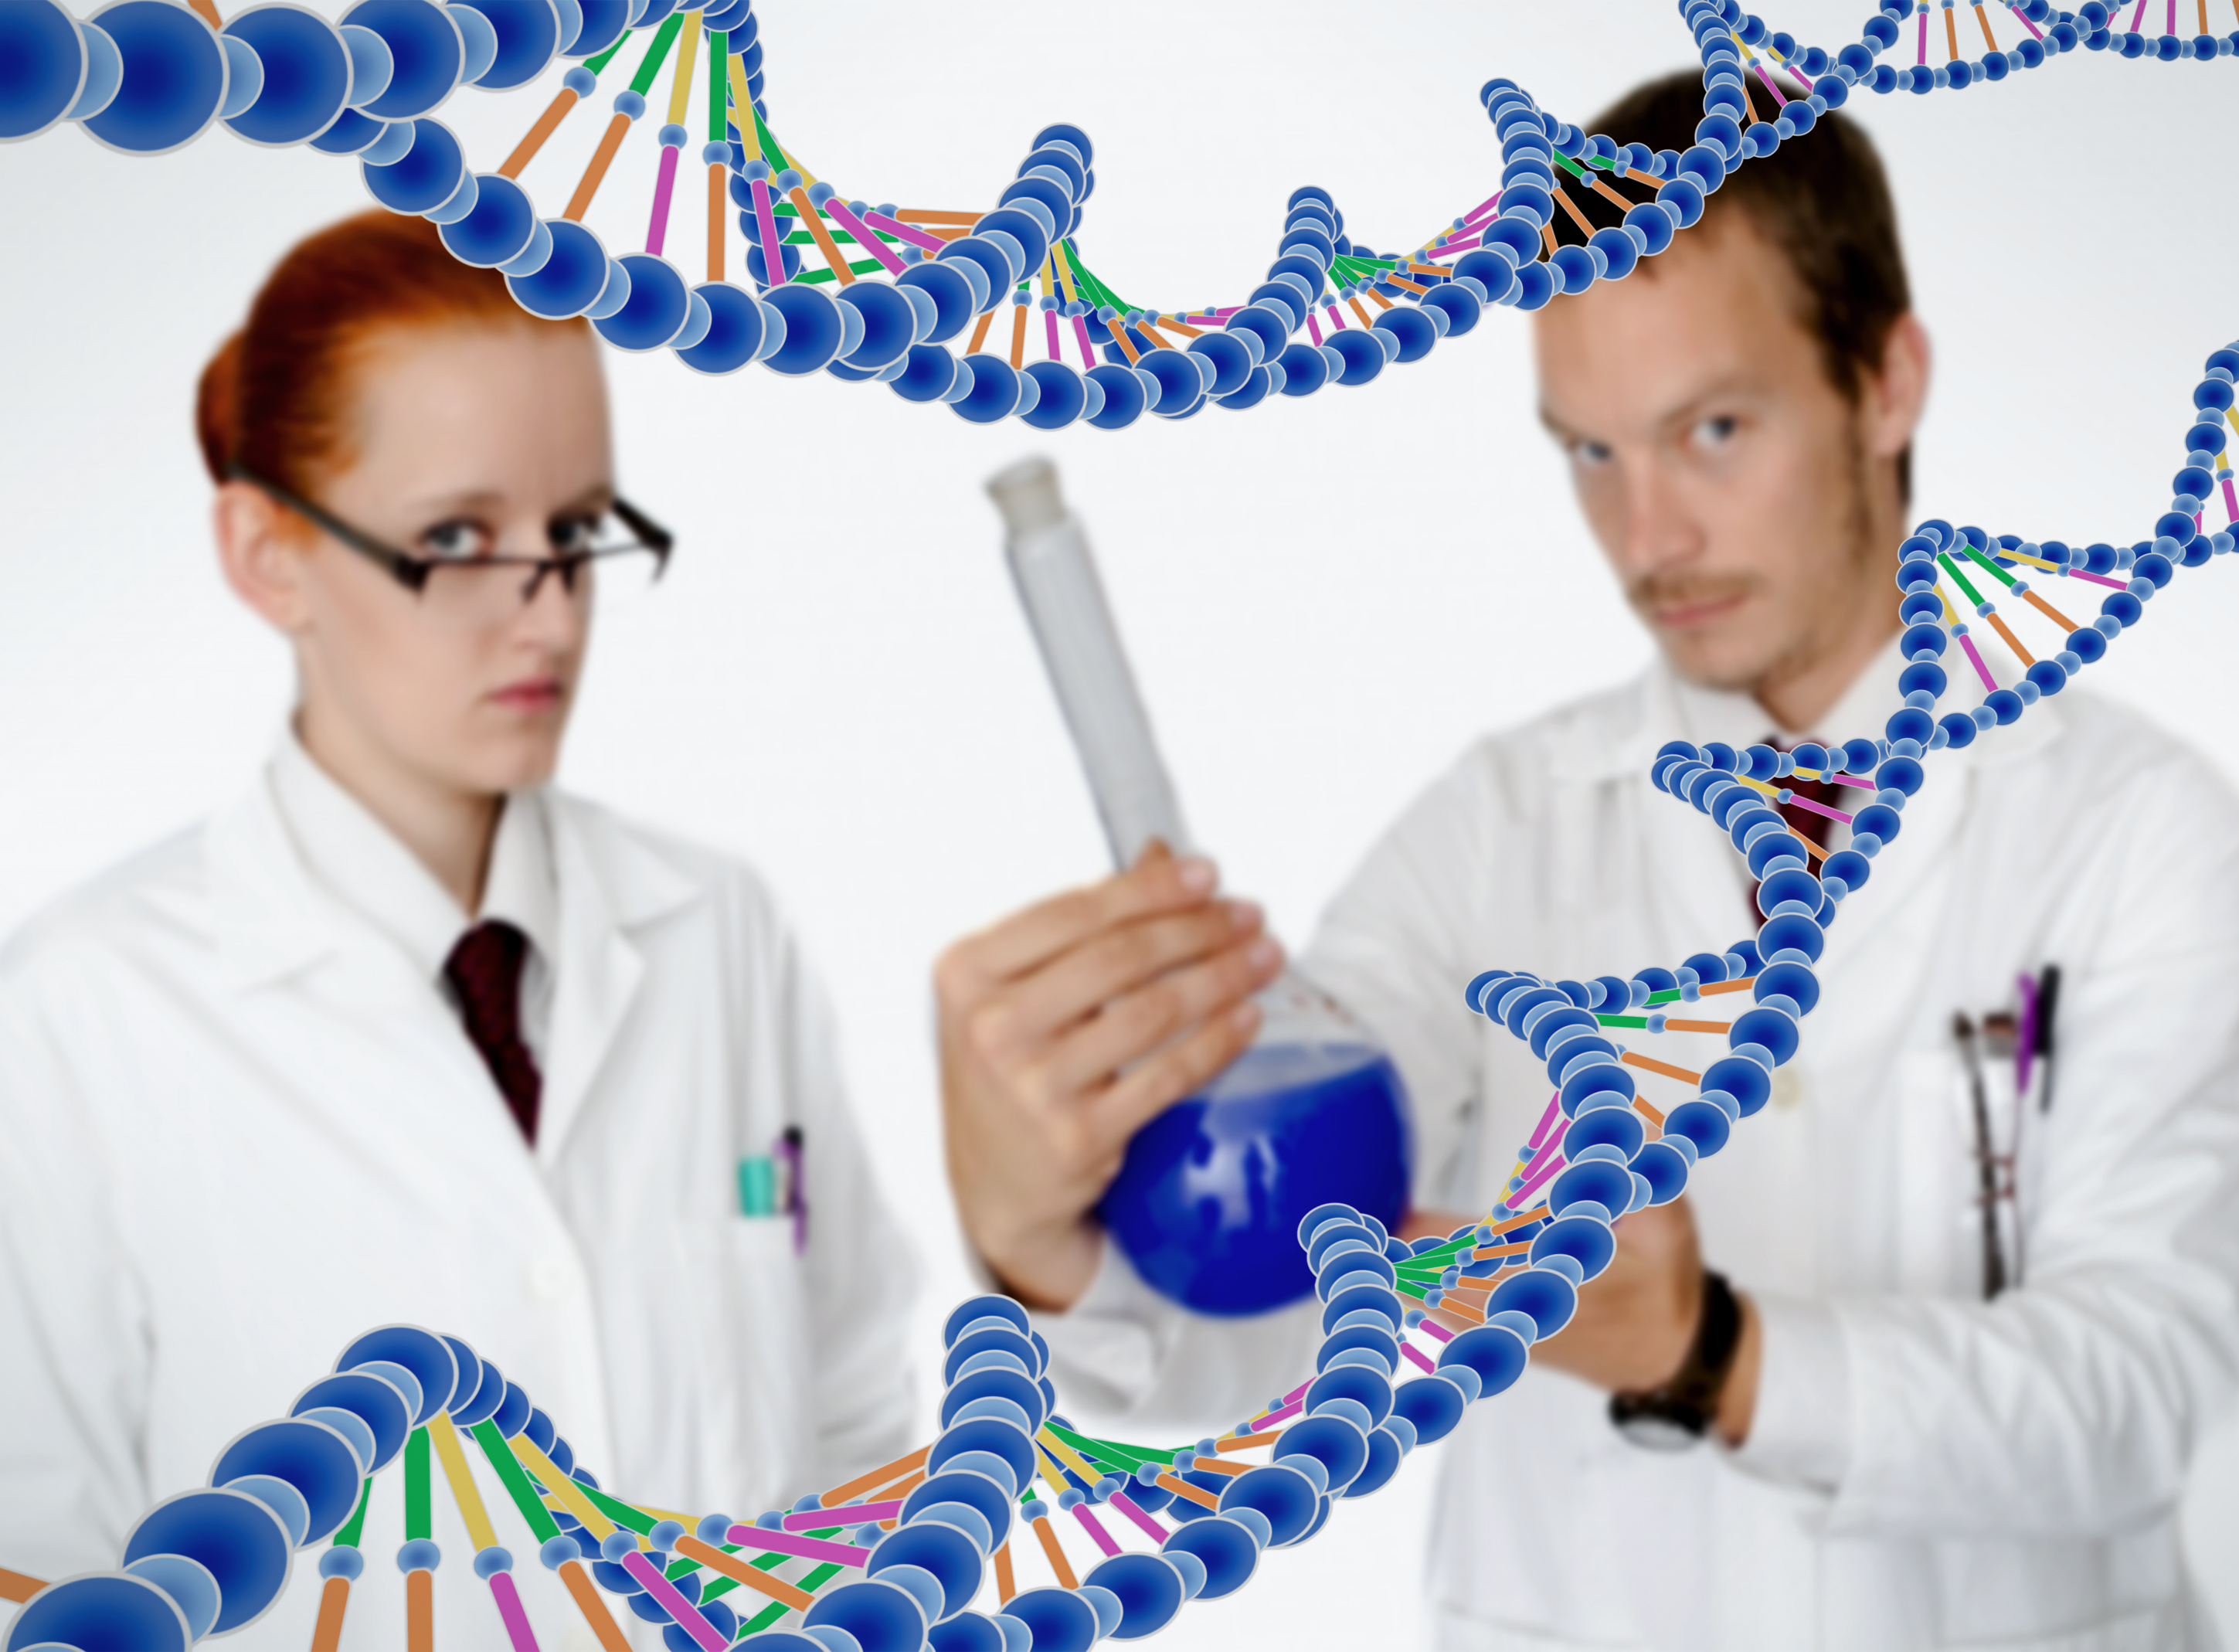 Medical doctors performing dna analysis photo